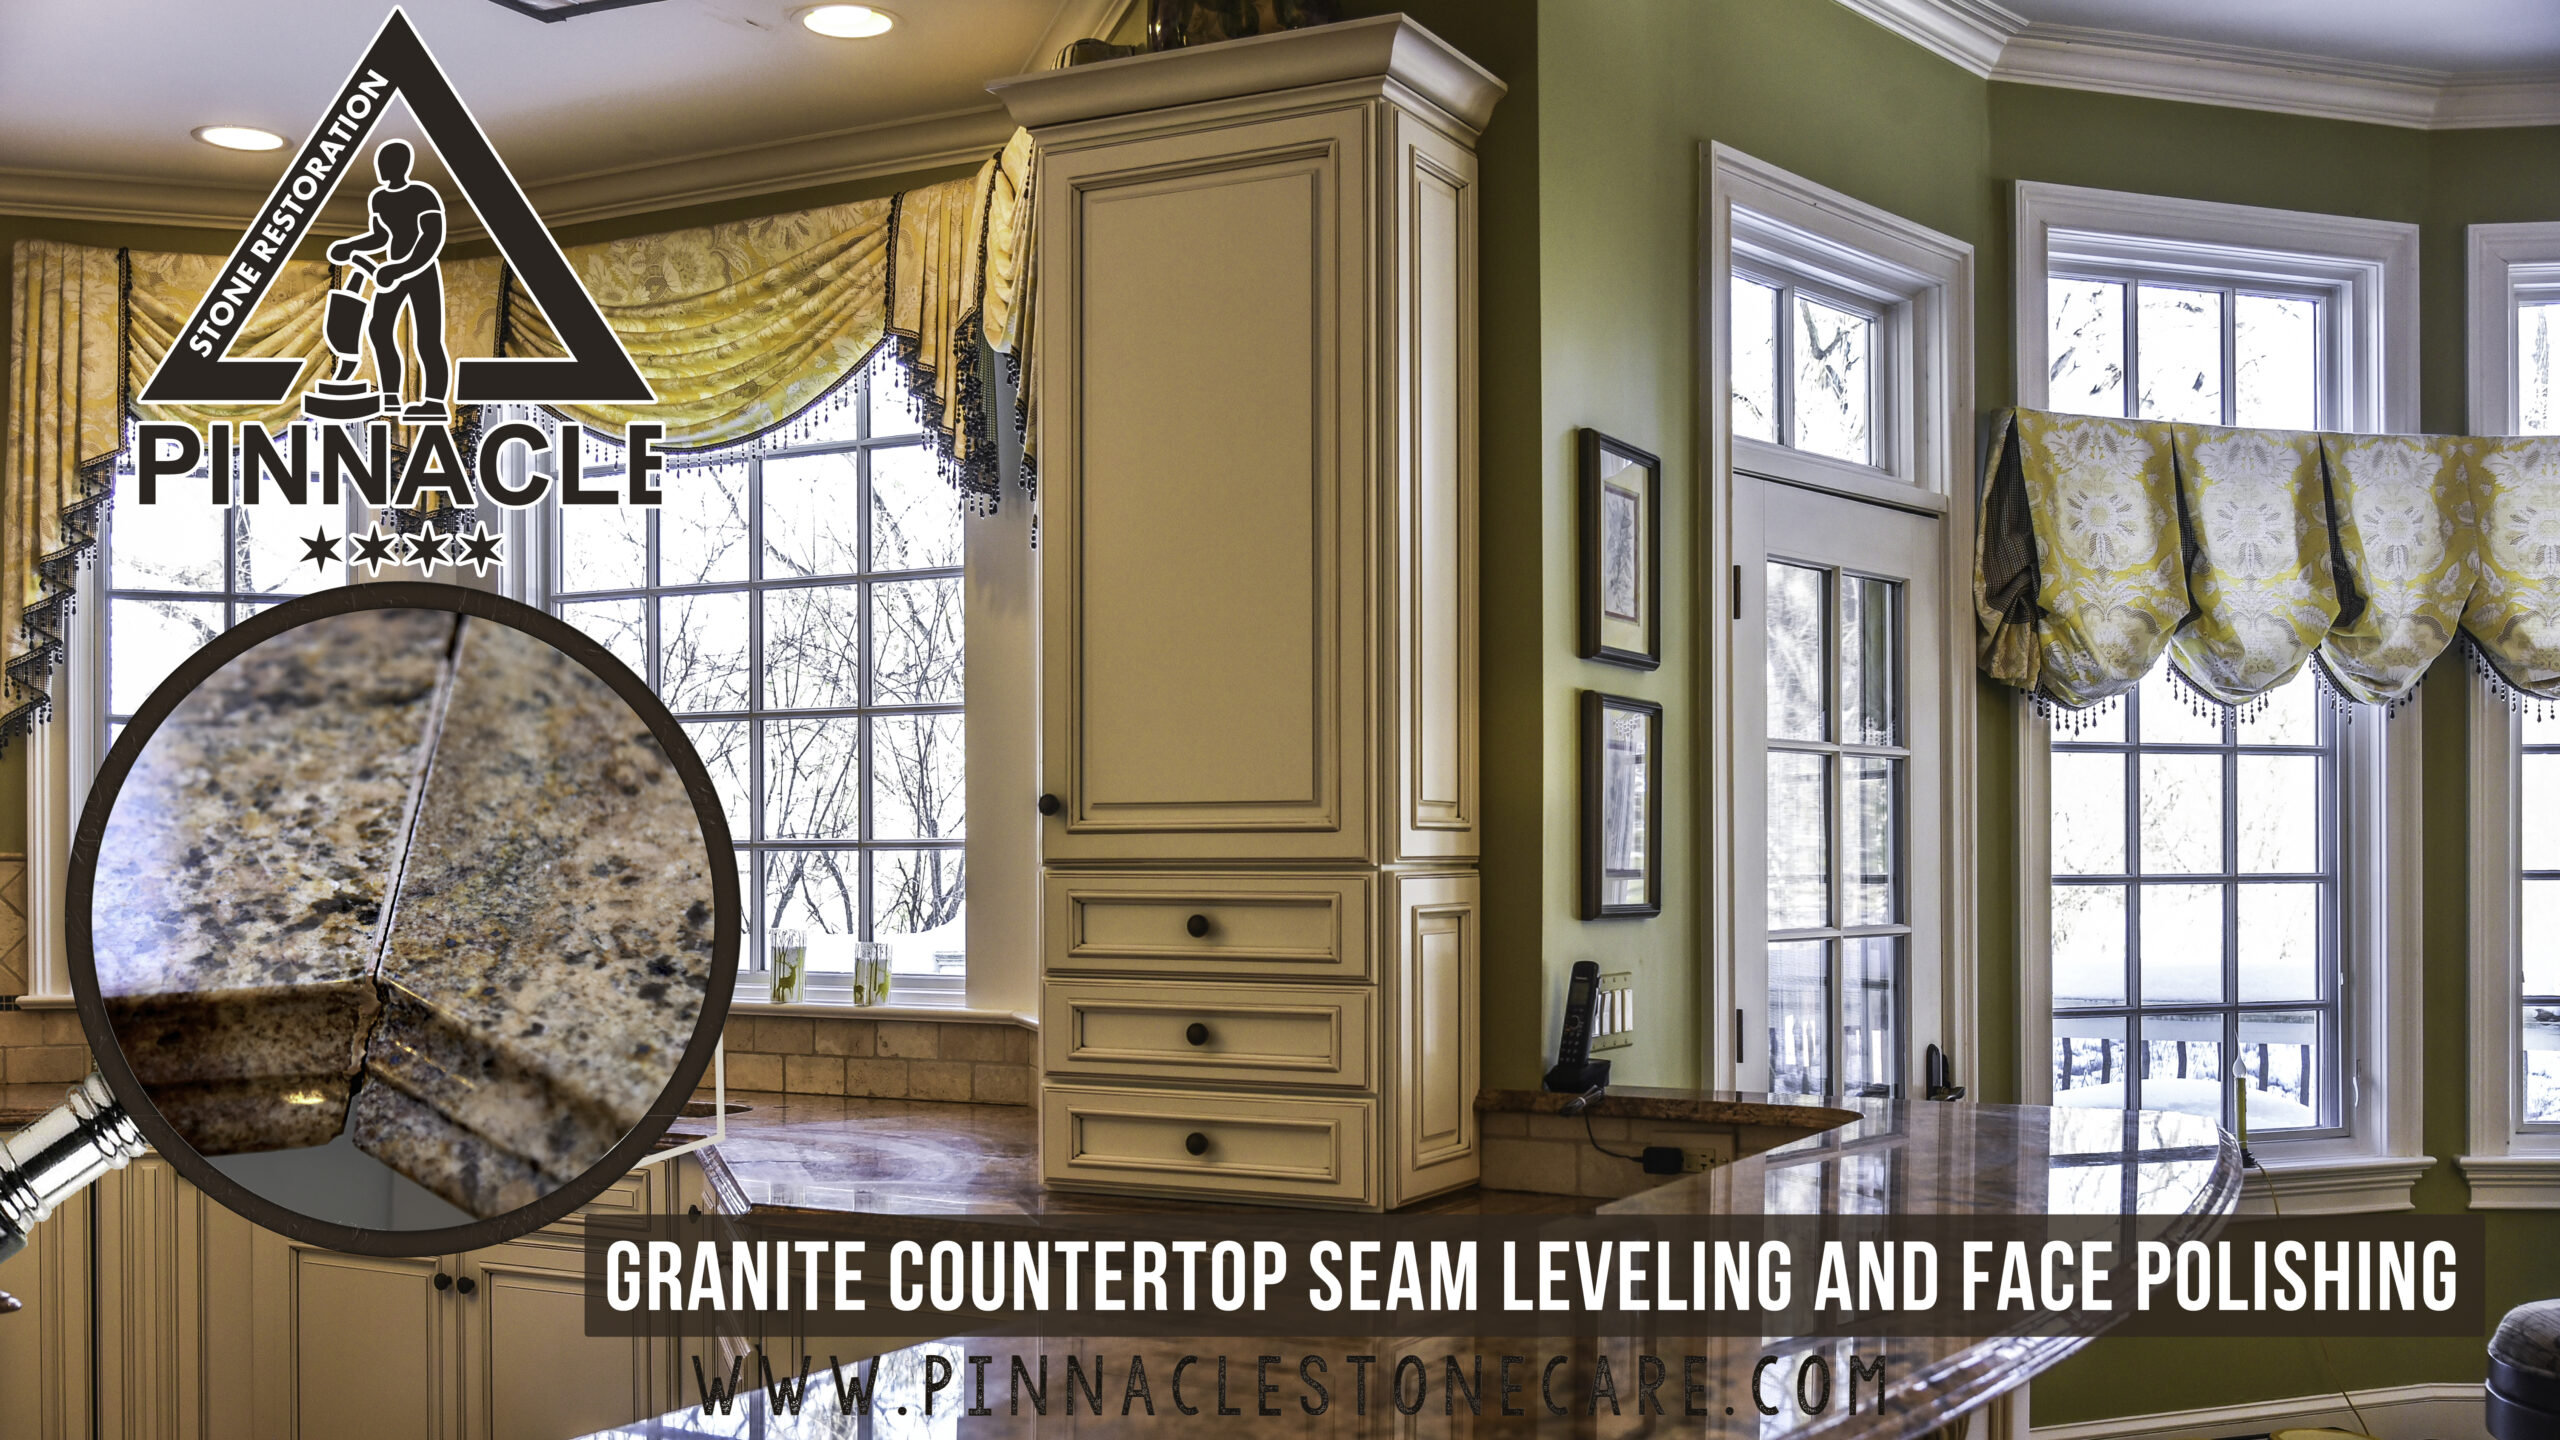 GRANITE COUNTERTOP SEAM LEVELING AND FACE POLISHING